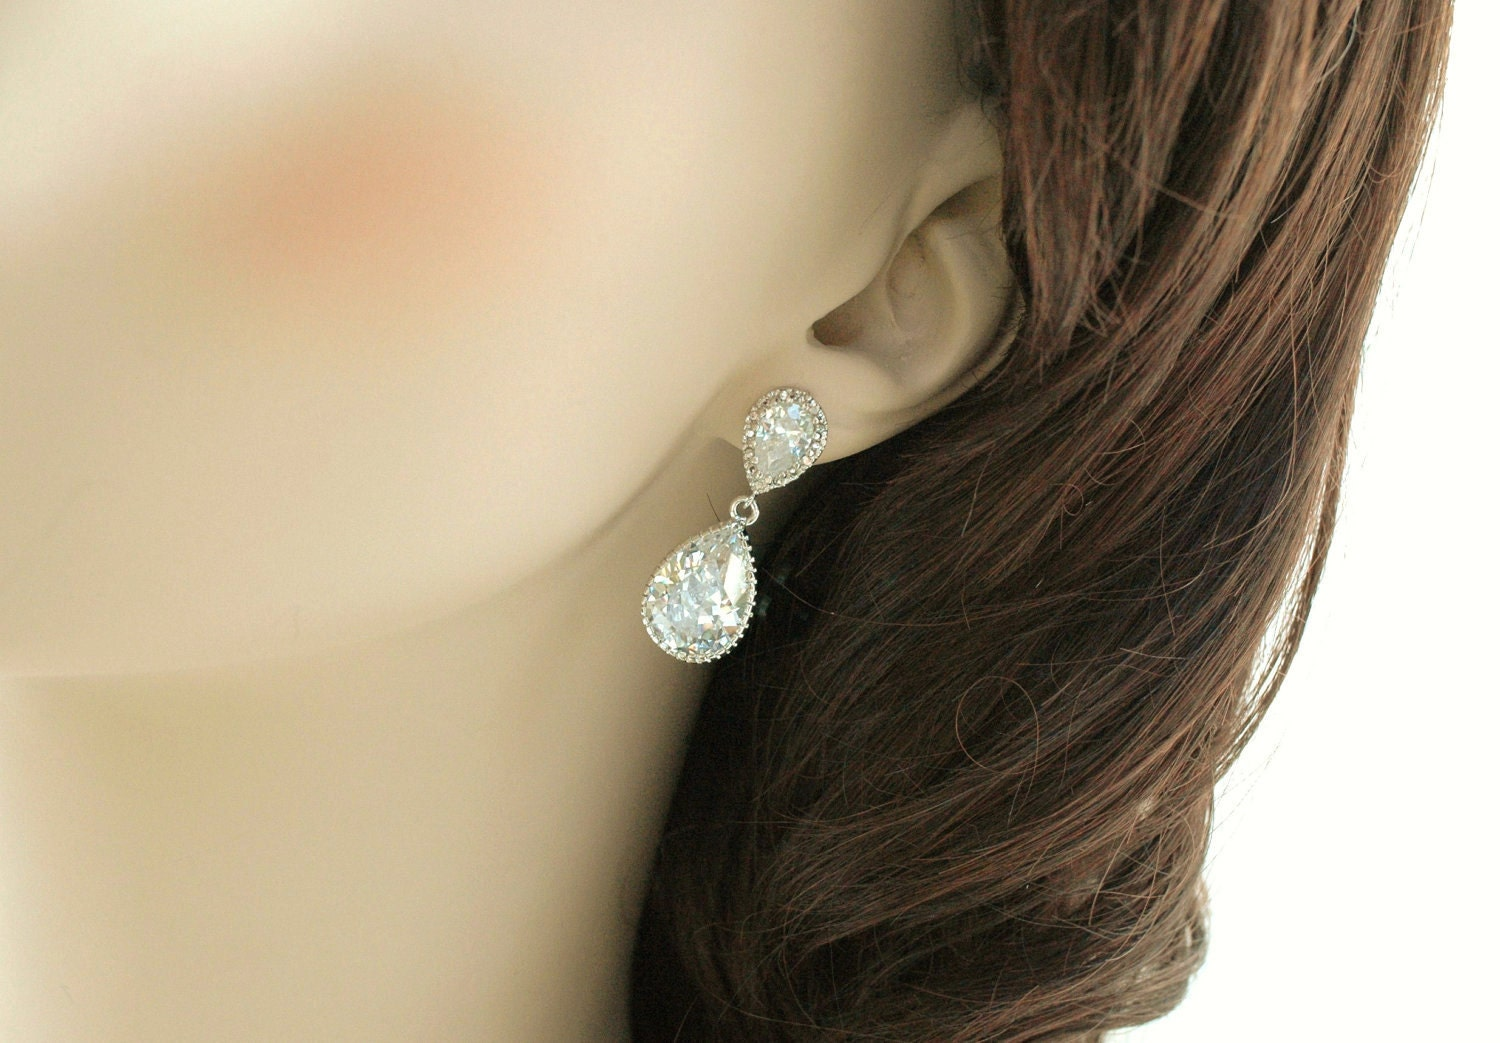 Tear drop rhinestone earrings, classic pear shape earrings, wedding jewelry